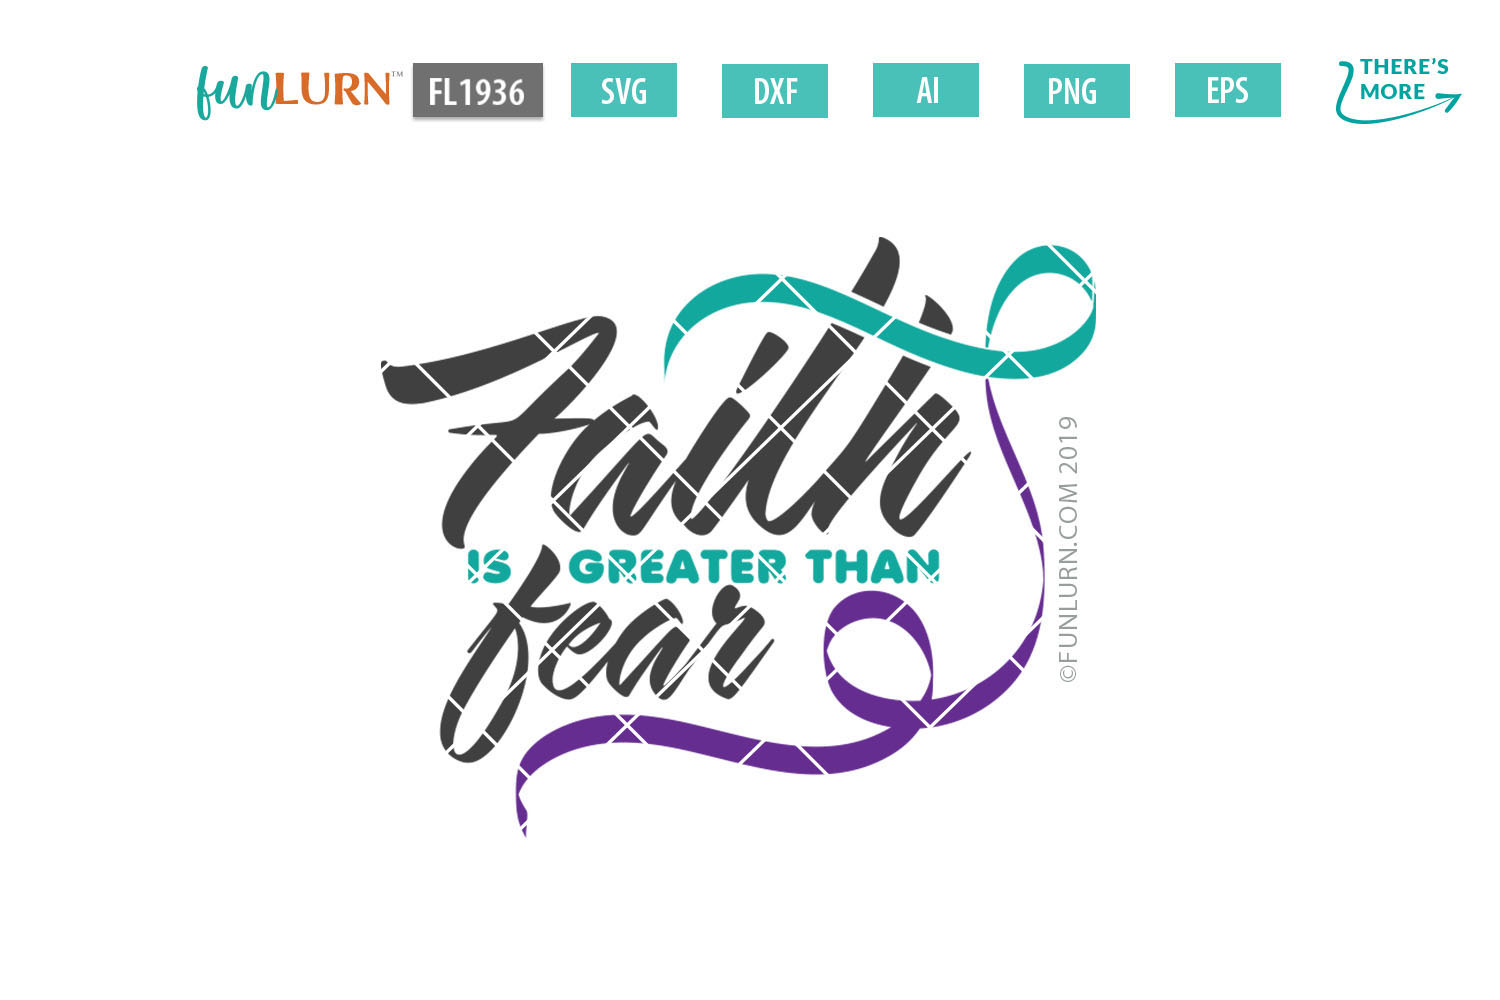 Faith is Greater Than Fear Teal and Purple Ribbon SVG example image 2